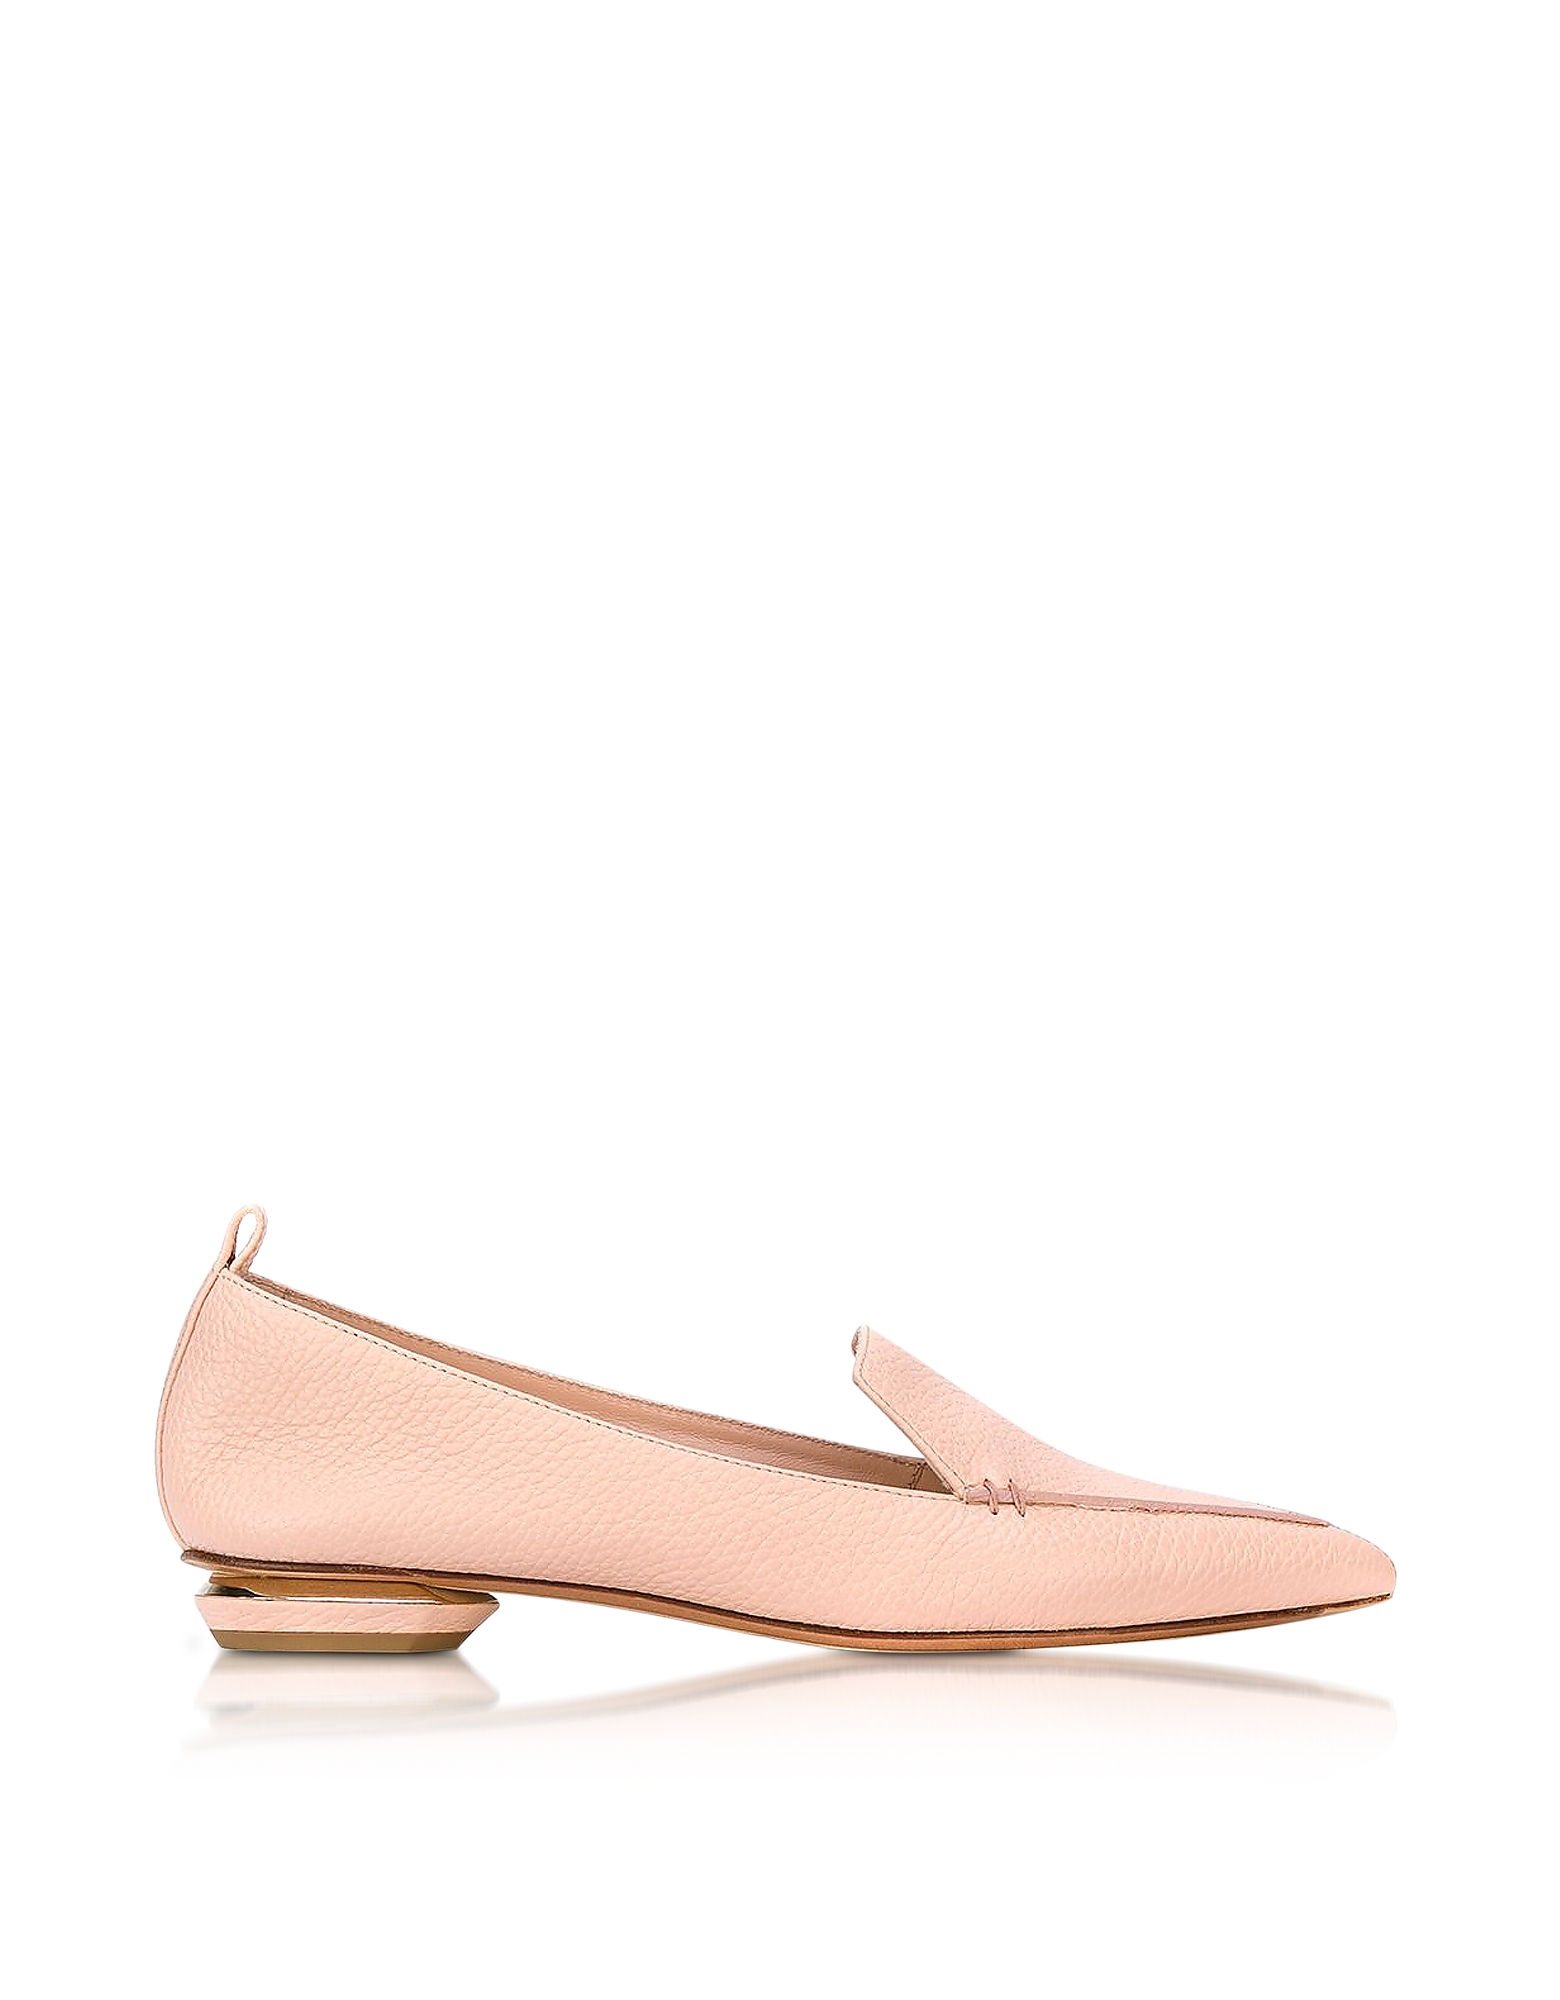 Nicholas Kirkwood Shoes, Beya Powder Pink Leather Loafer